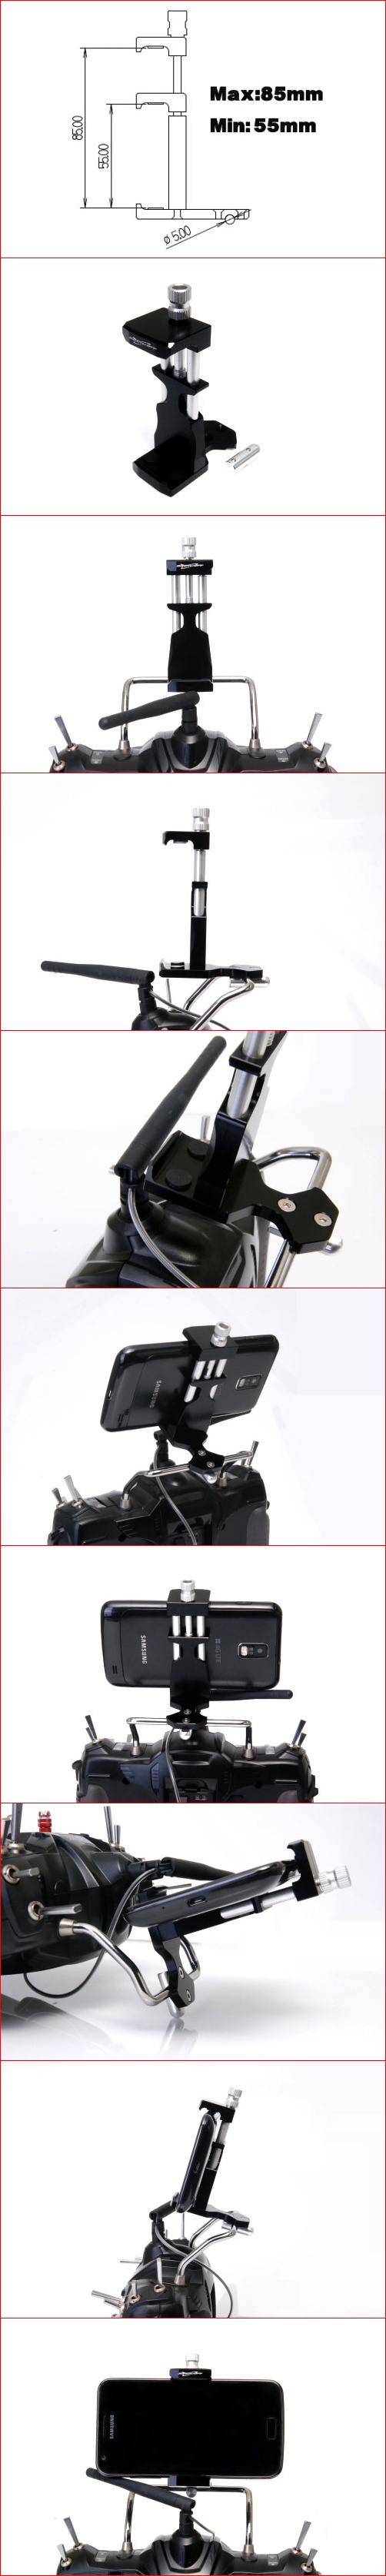 SE mobile Grip for transmitter(S)